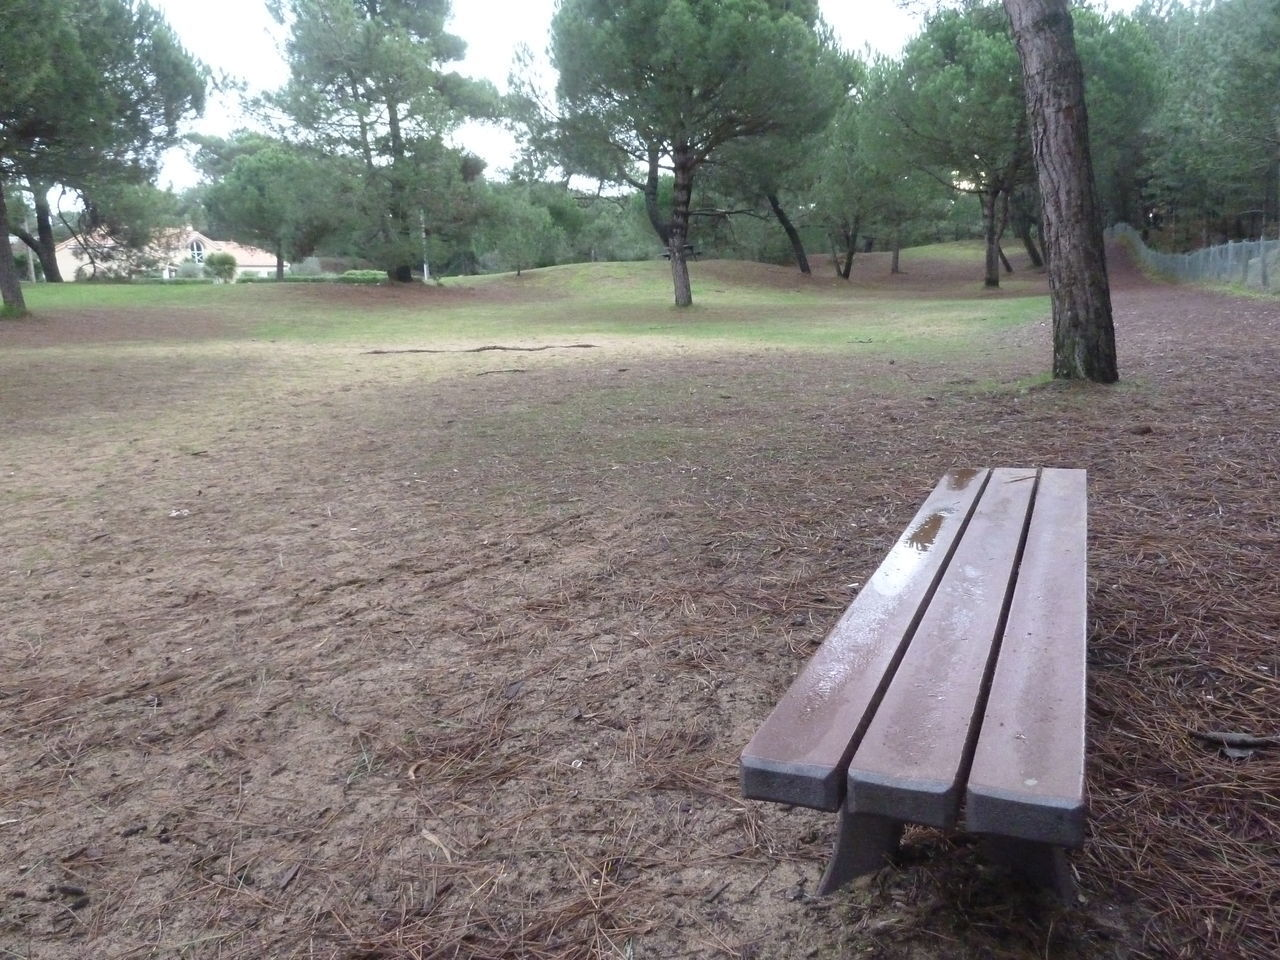 tree, plant, grass, land, nature, no people, absence, day, landscape, tranquility, park, field, tranquil scene, environment, seat, empty, tree trunk, trunk, bench, growth, outdoors